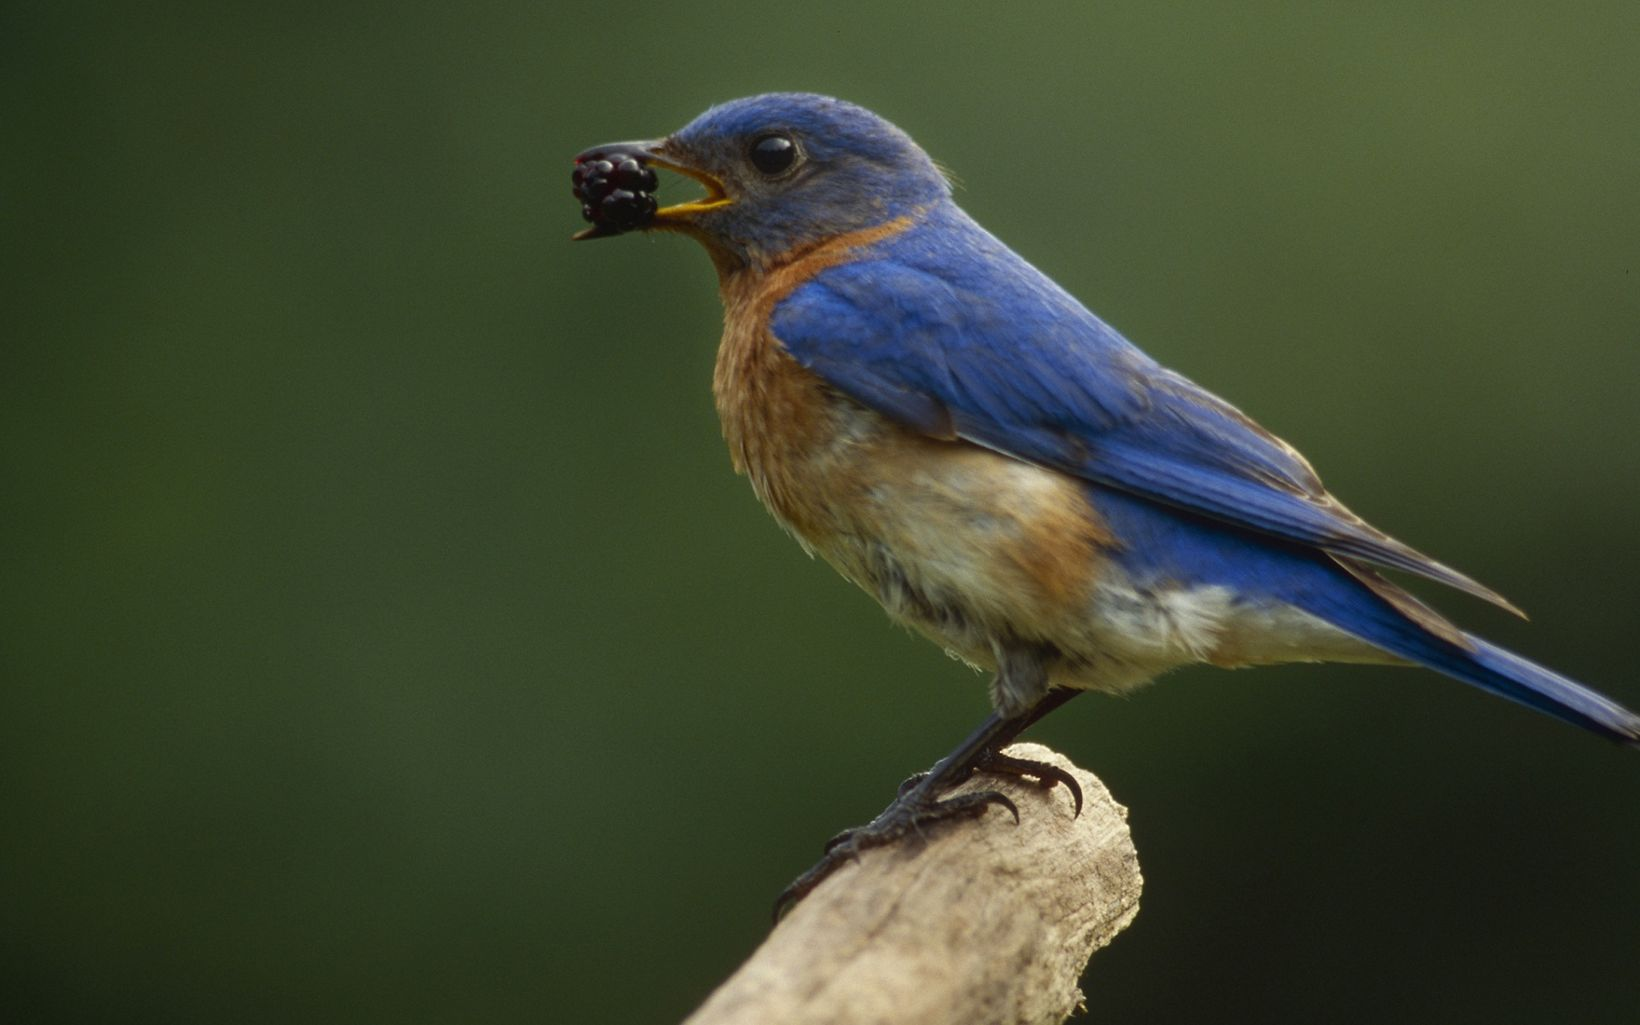 A blue bird with orange breast feathers perches on a branch with a blackberry held in its beak.